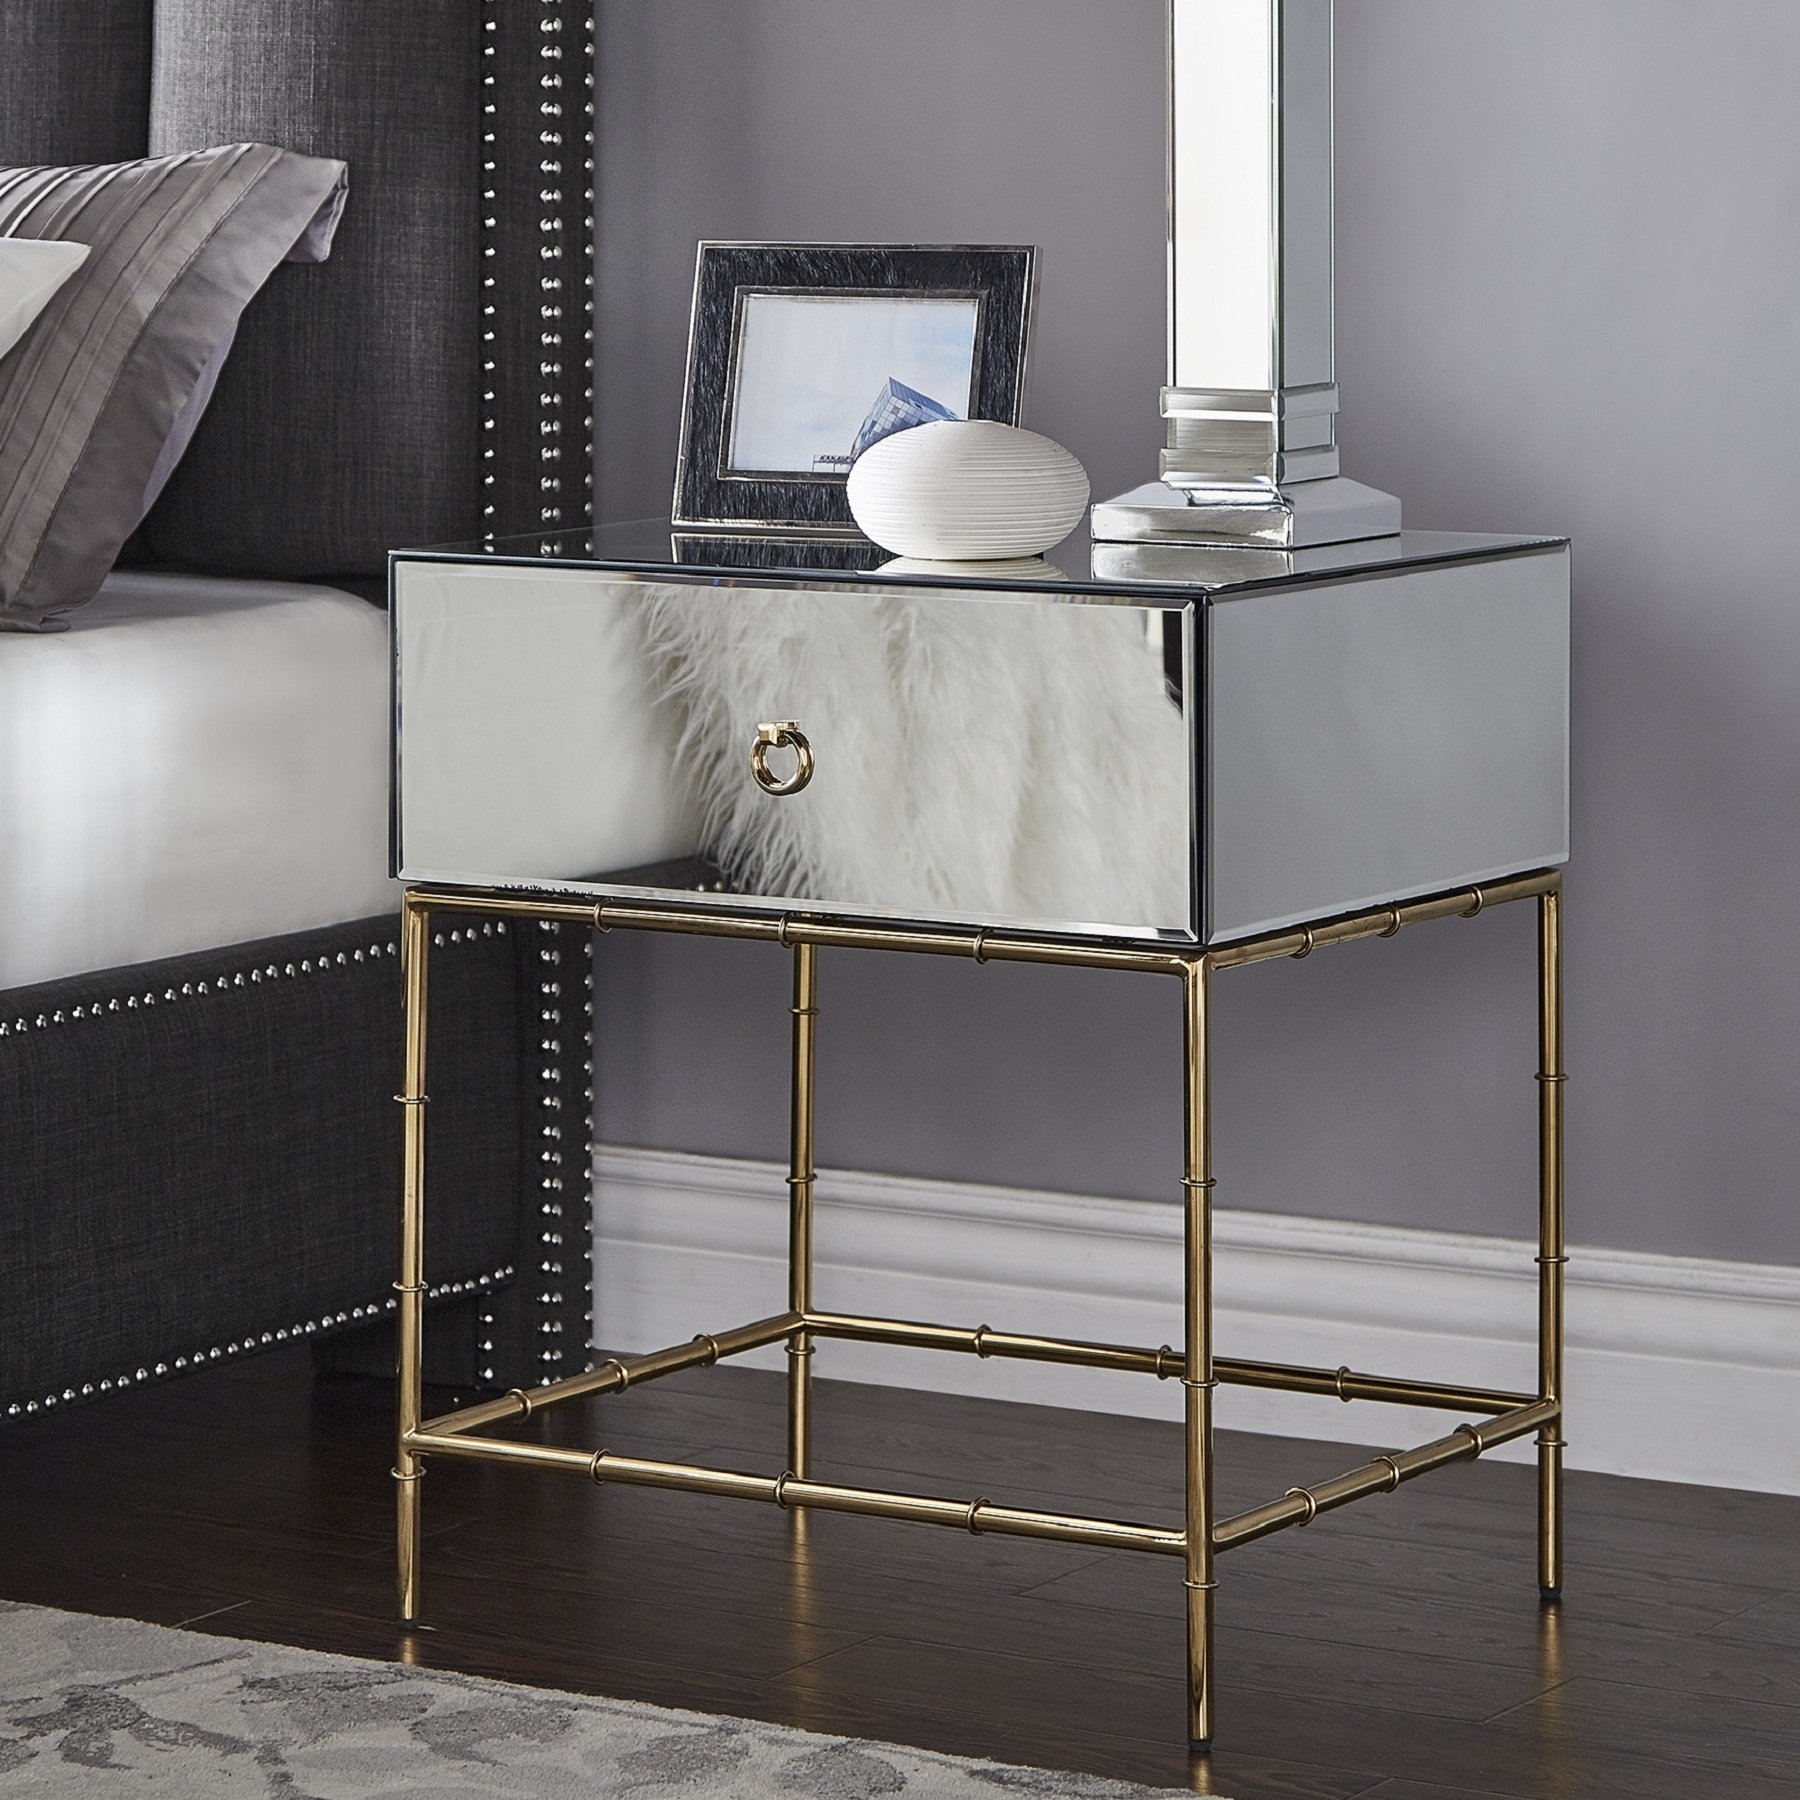 wade mirrored accent table with gold finish base inspire bold room essentials mixed material reproduction vintage furniture door threshold square for gaming tall small round